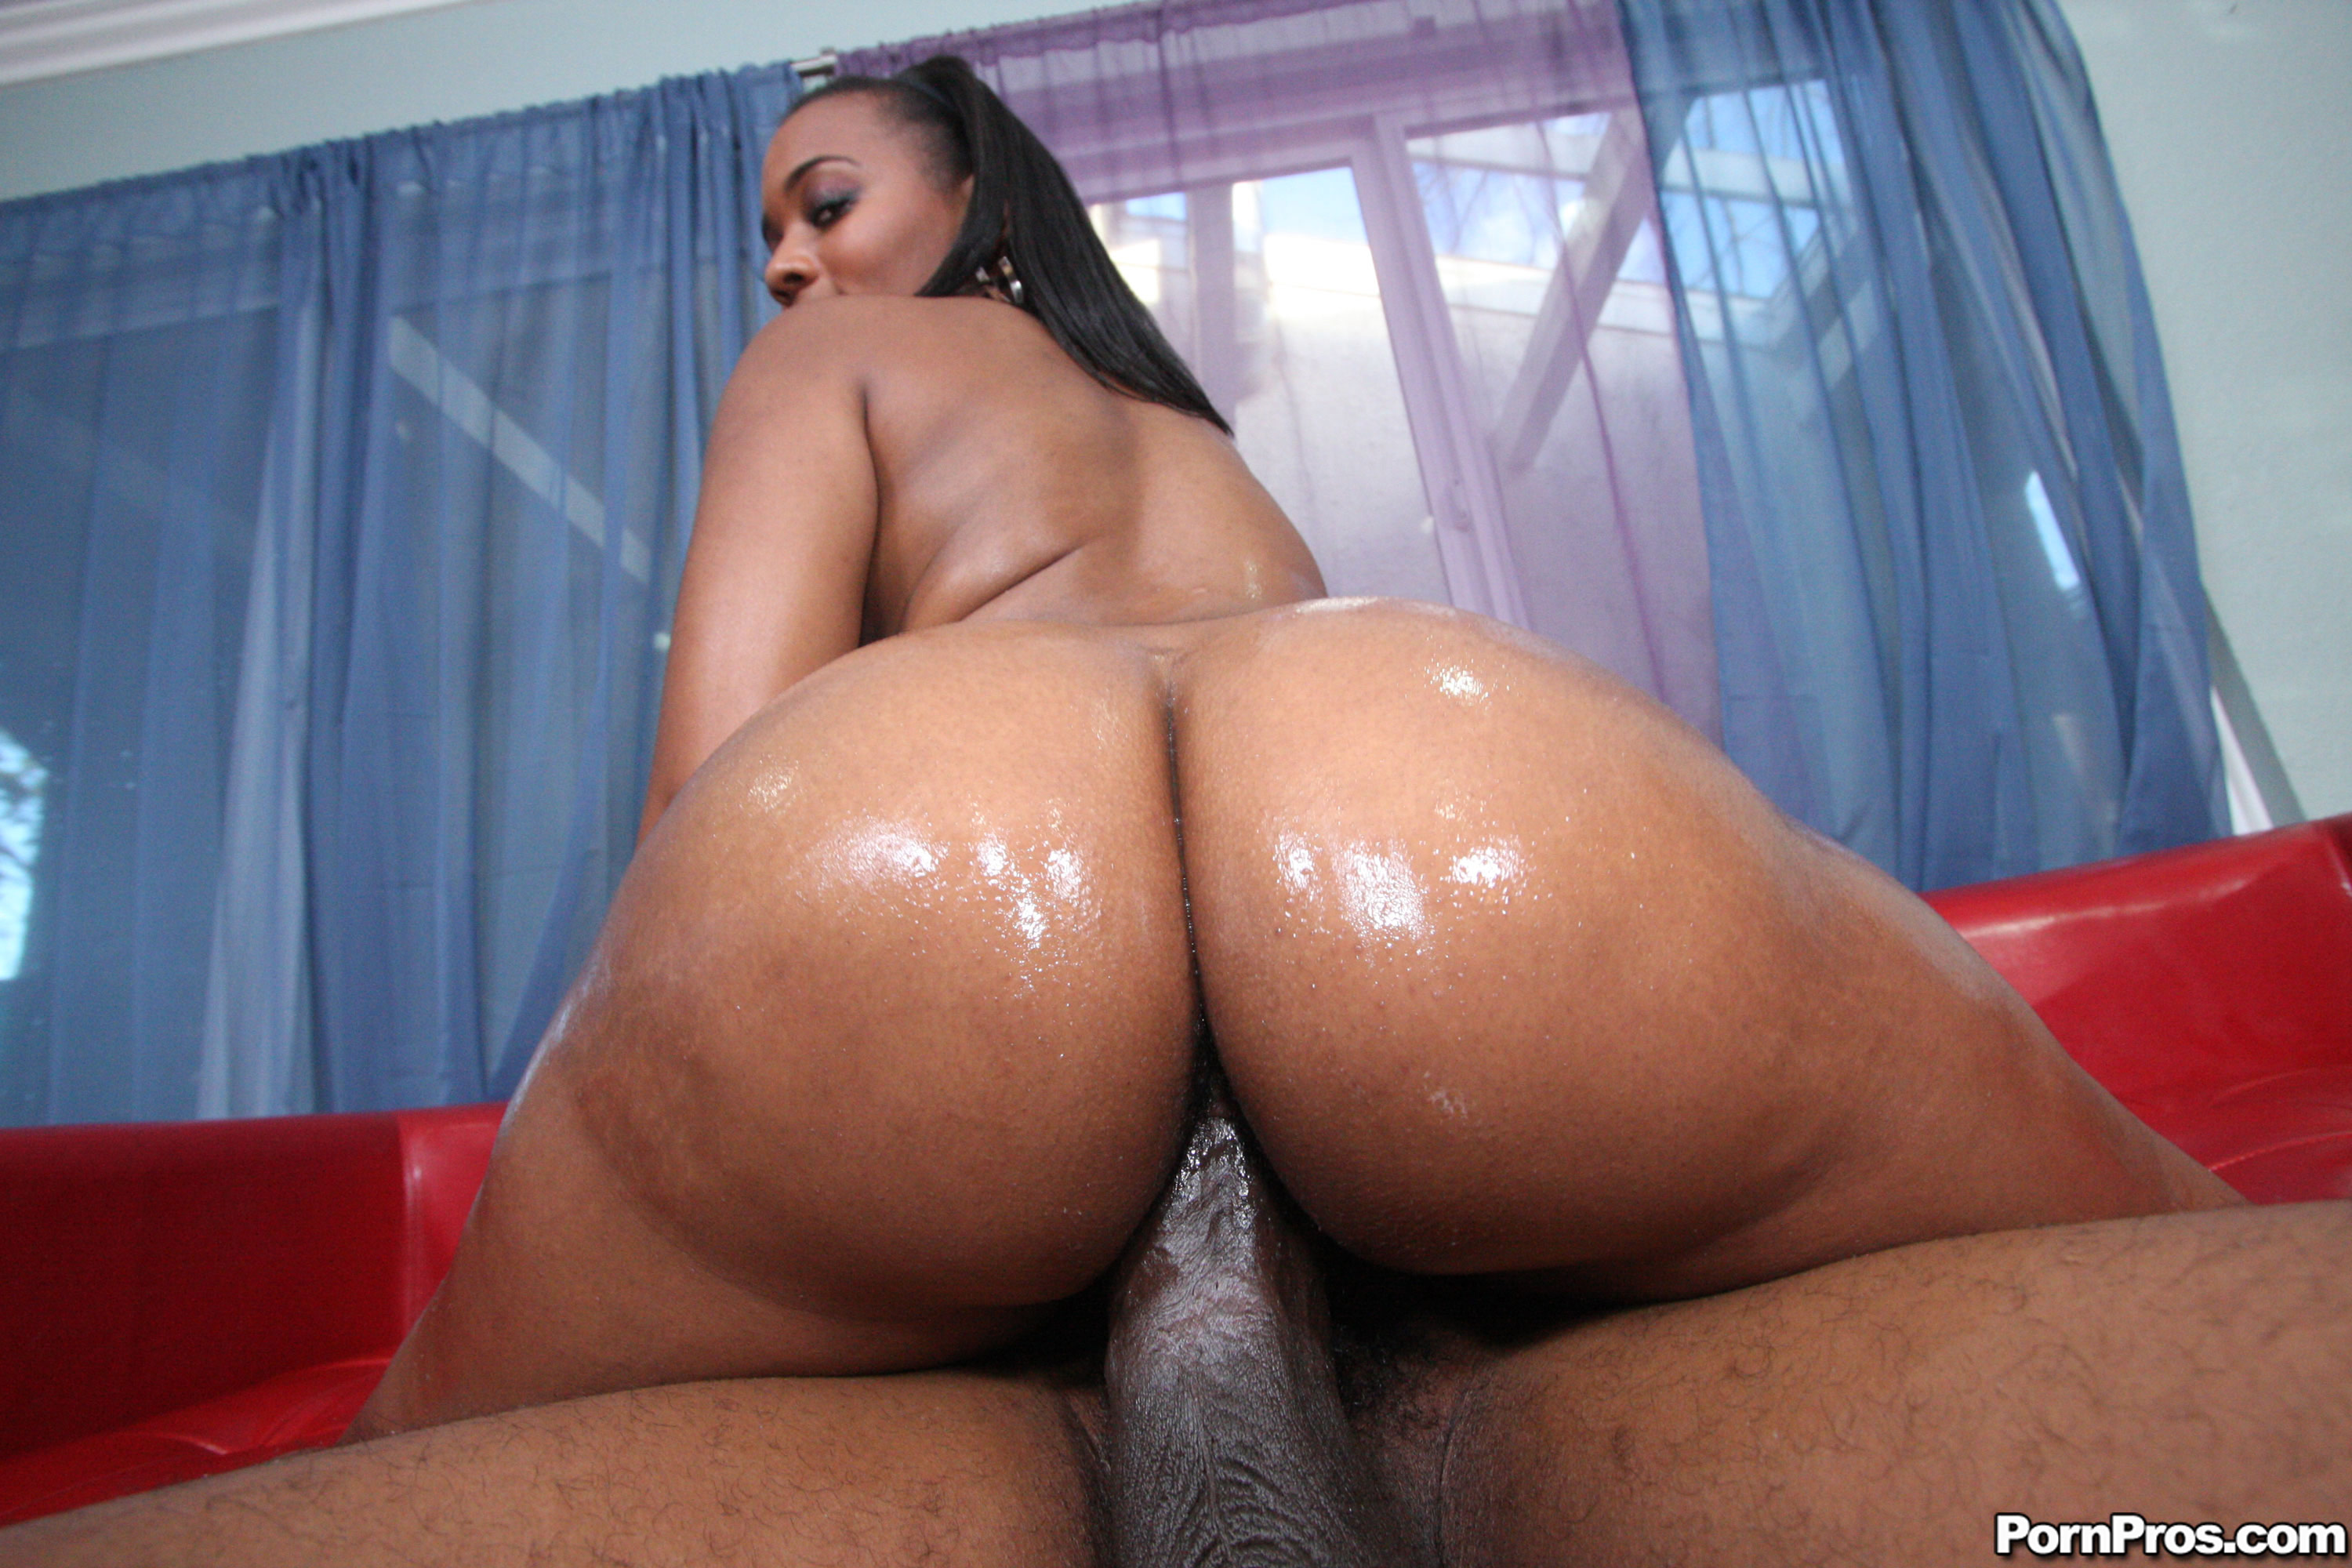 Big ass black girls getting fucked